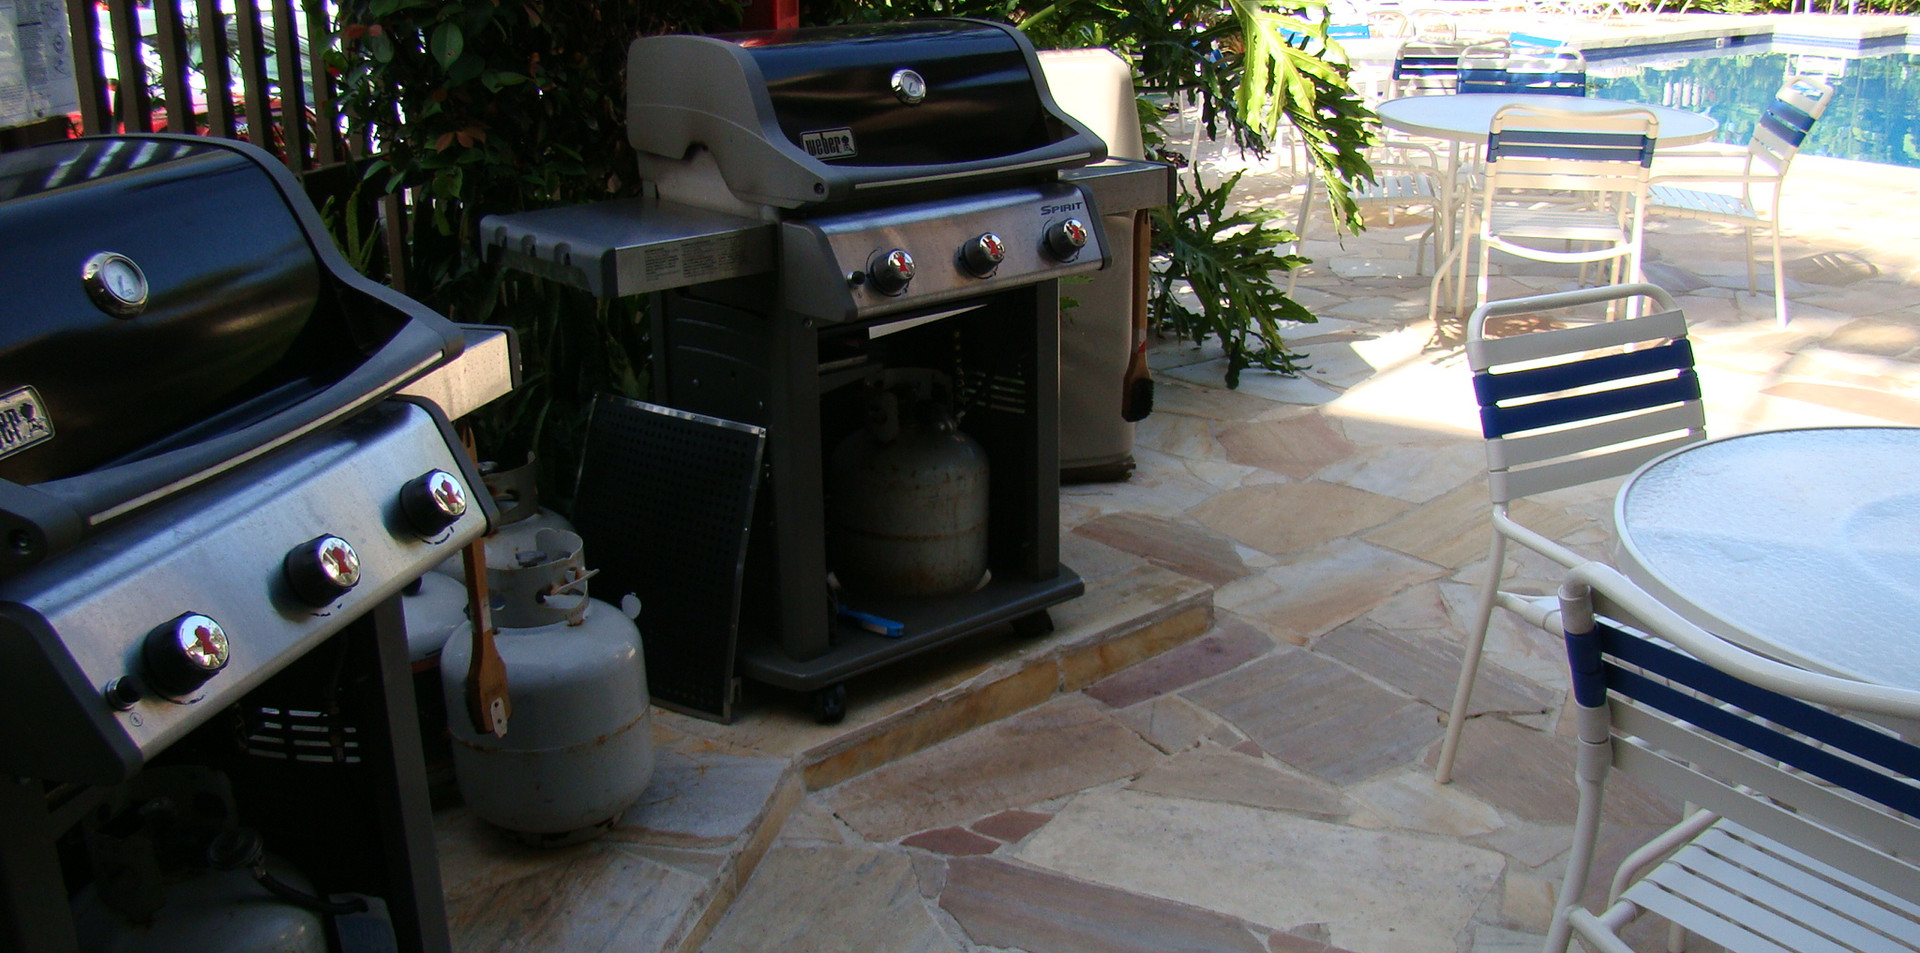 Grilling in the Pool Area